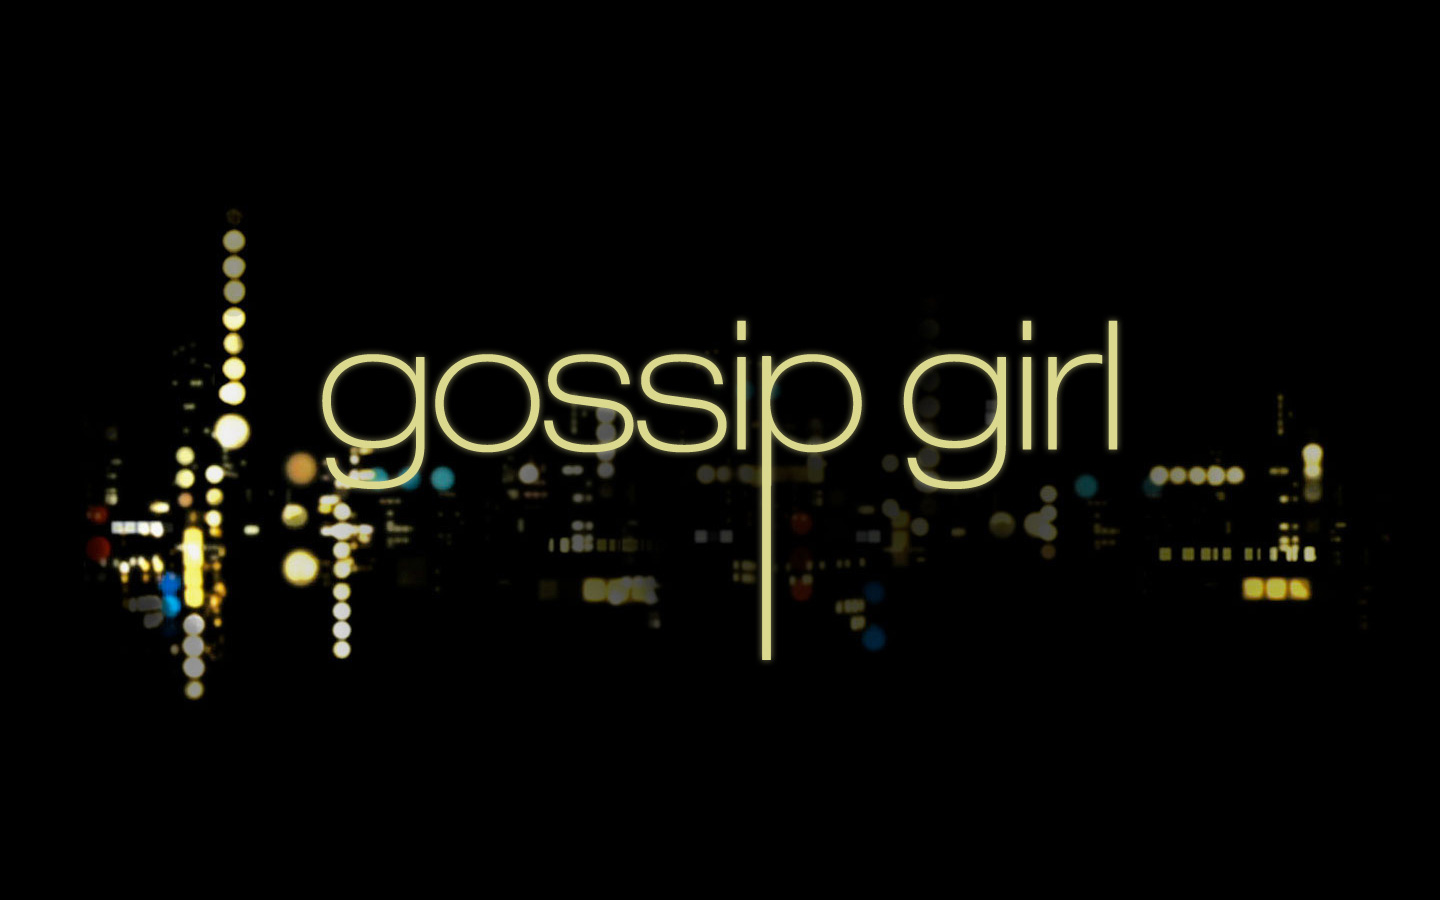 Gossip Girl Quotes About New York: Mode De La Diabolique: Fevereiro 2013